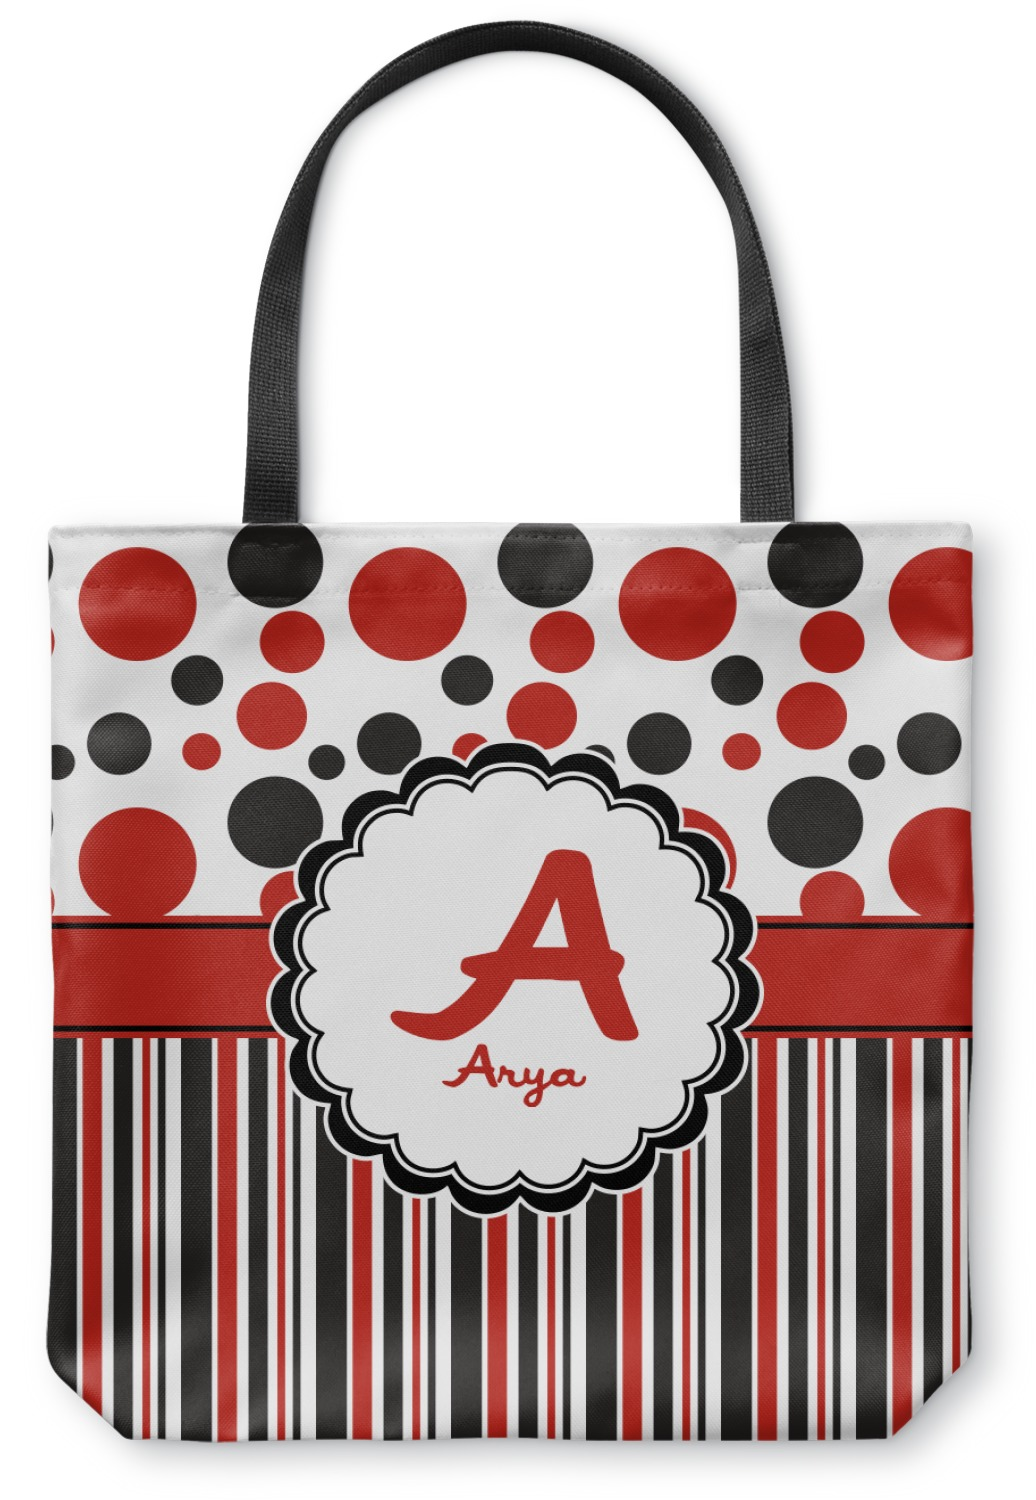 YouCustomizeIt Stripes /& Dots Duffel Bag Personalized